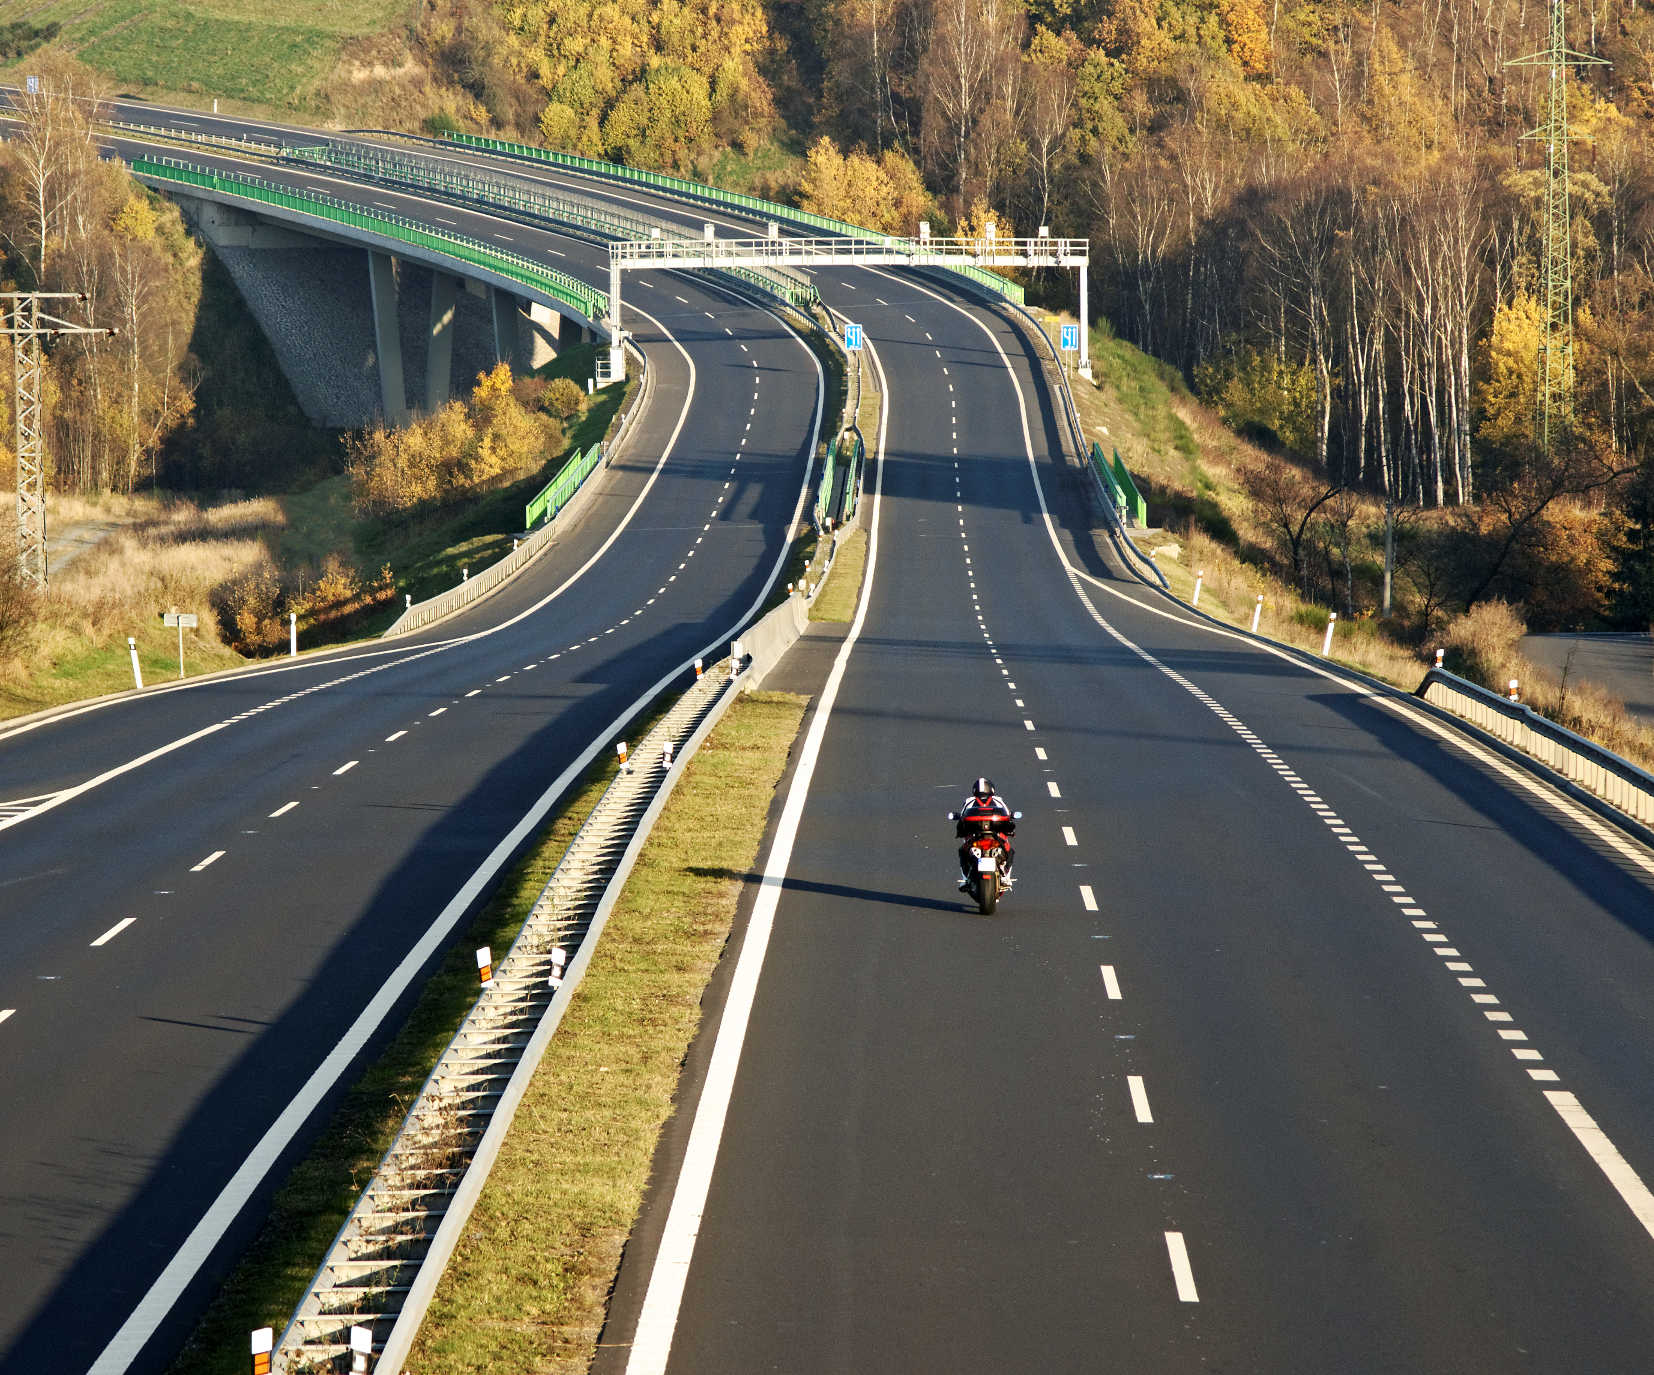 Motorcycle riding on open road